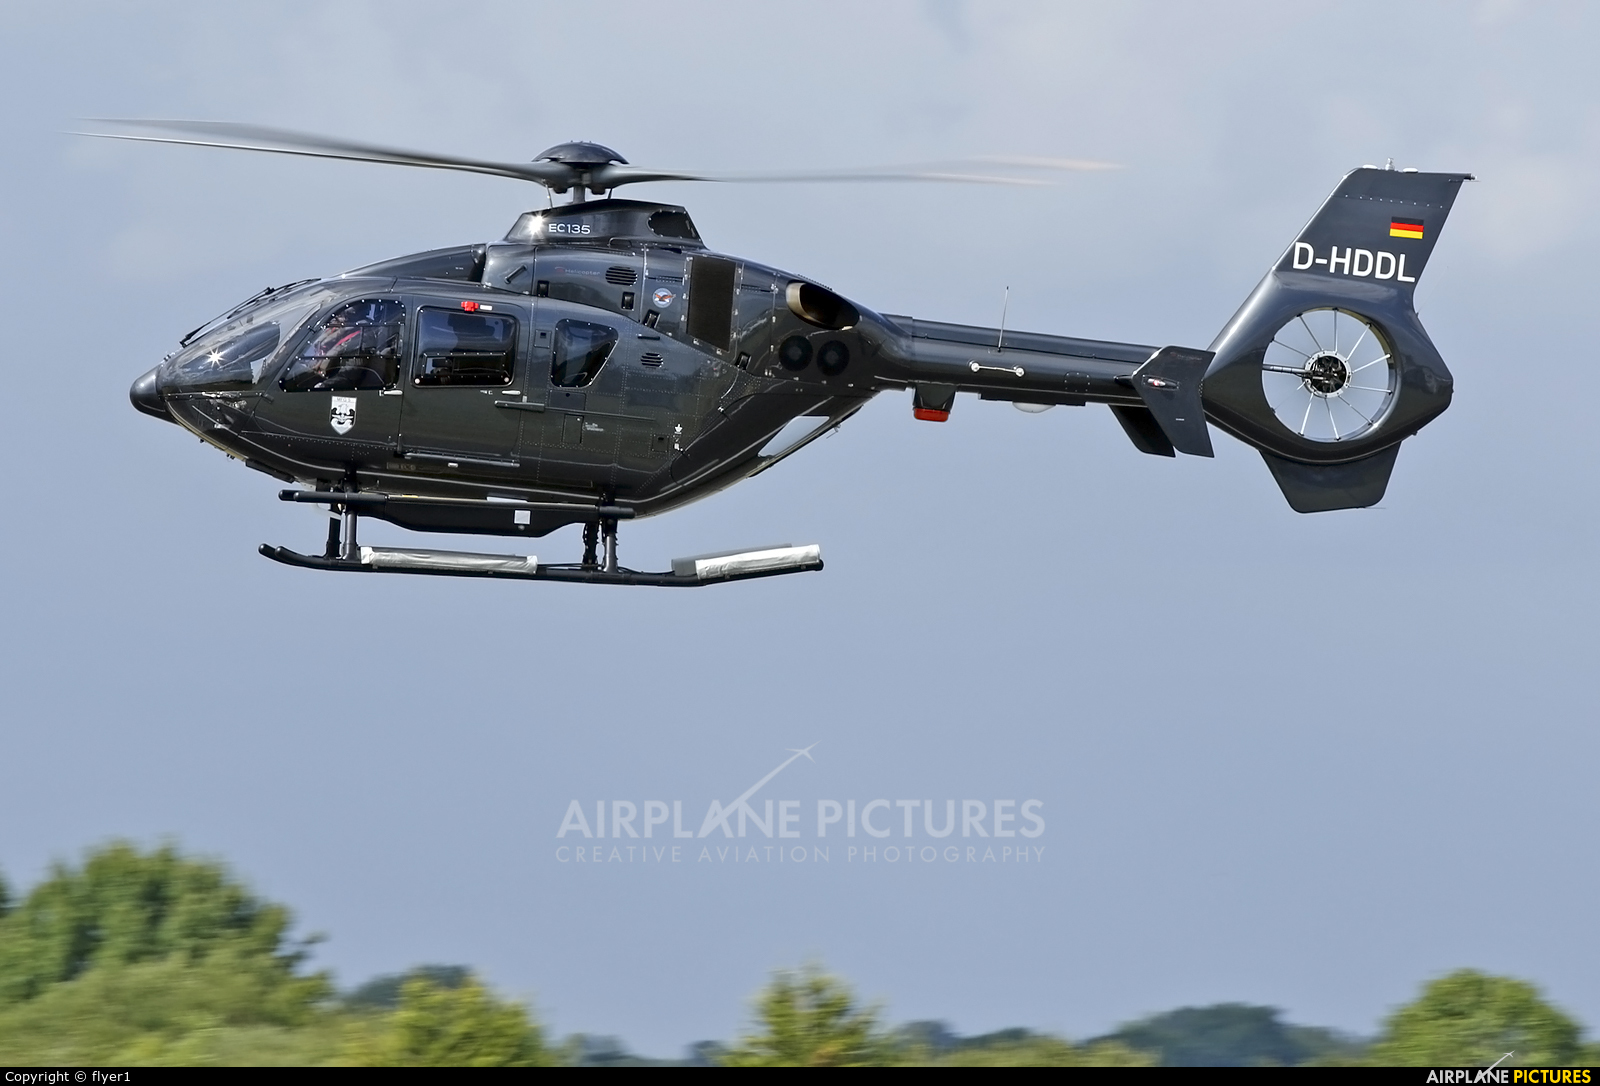 Germany - Navy D-HDDL aircraft at Fairford